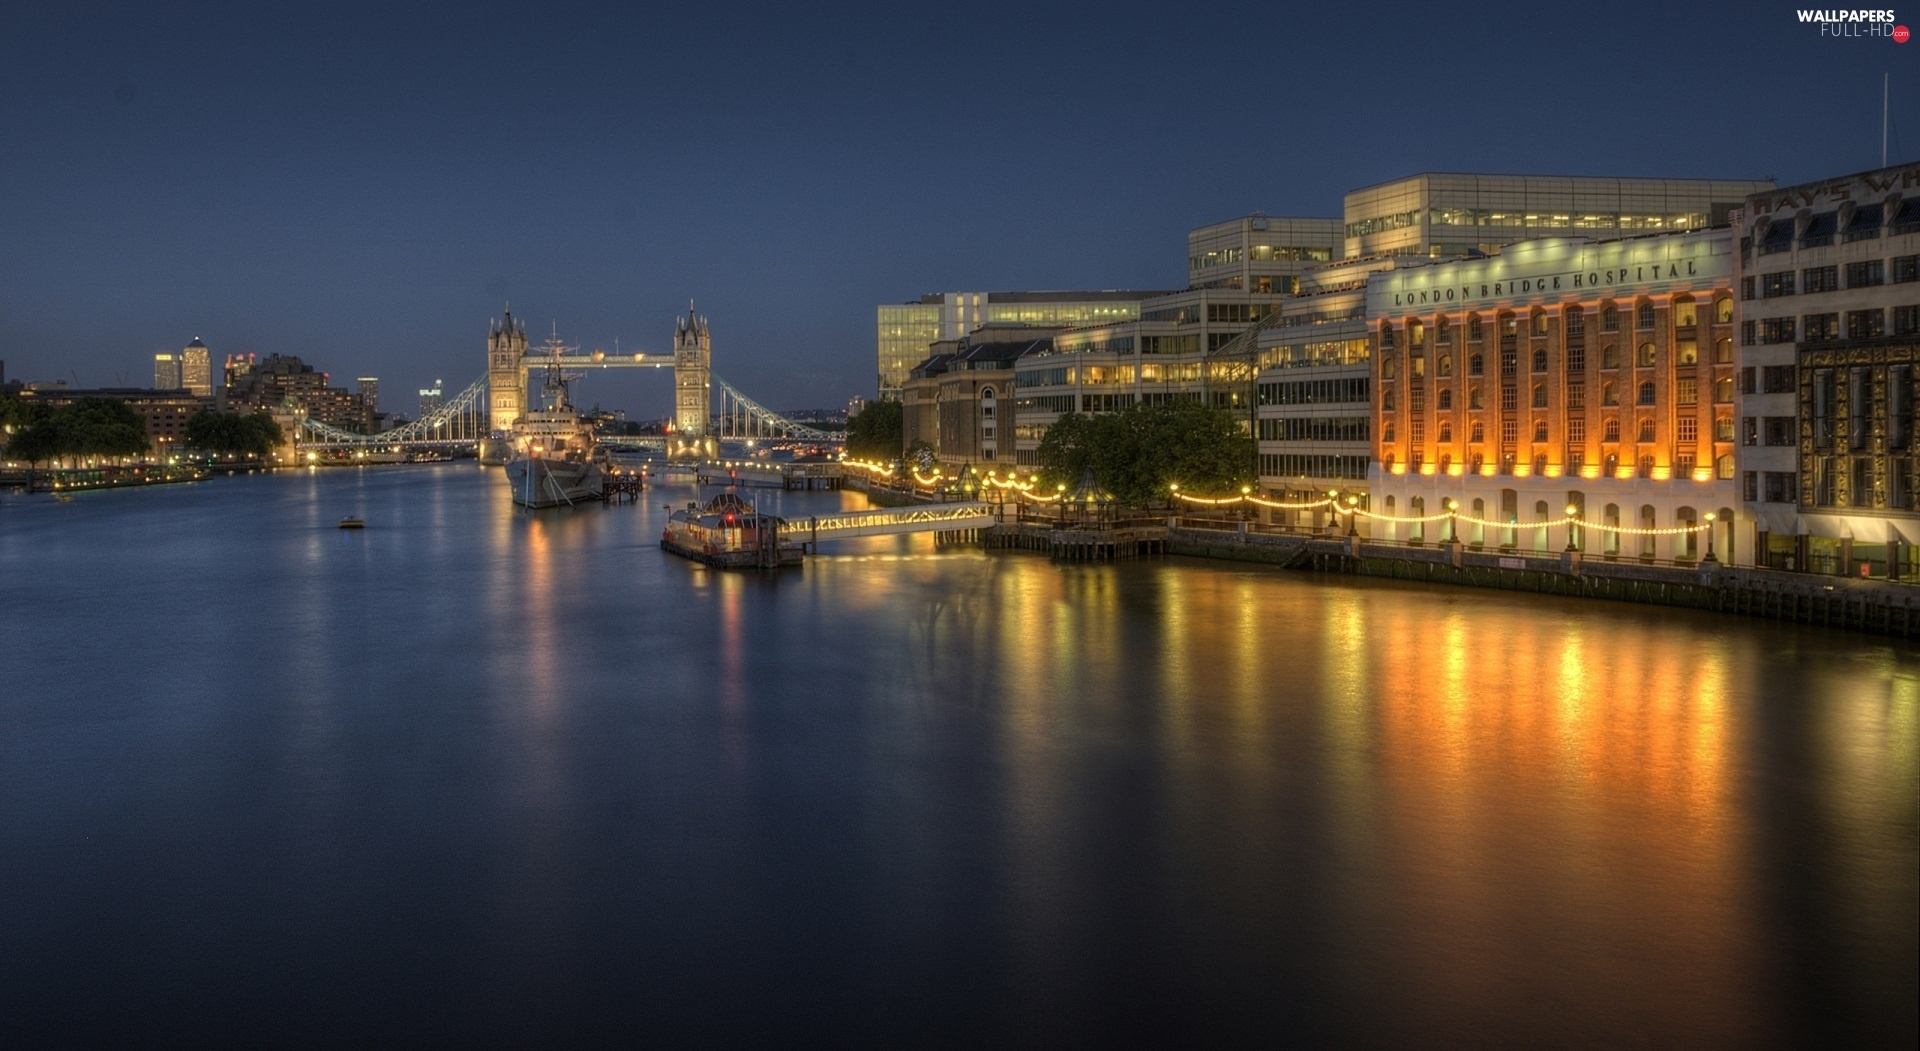 Night, London, illuminated, Town